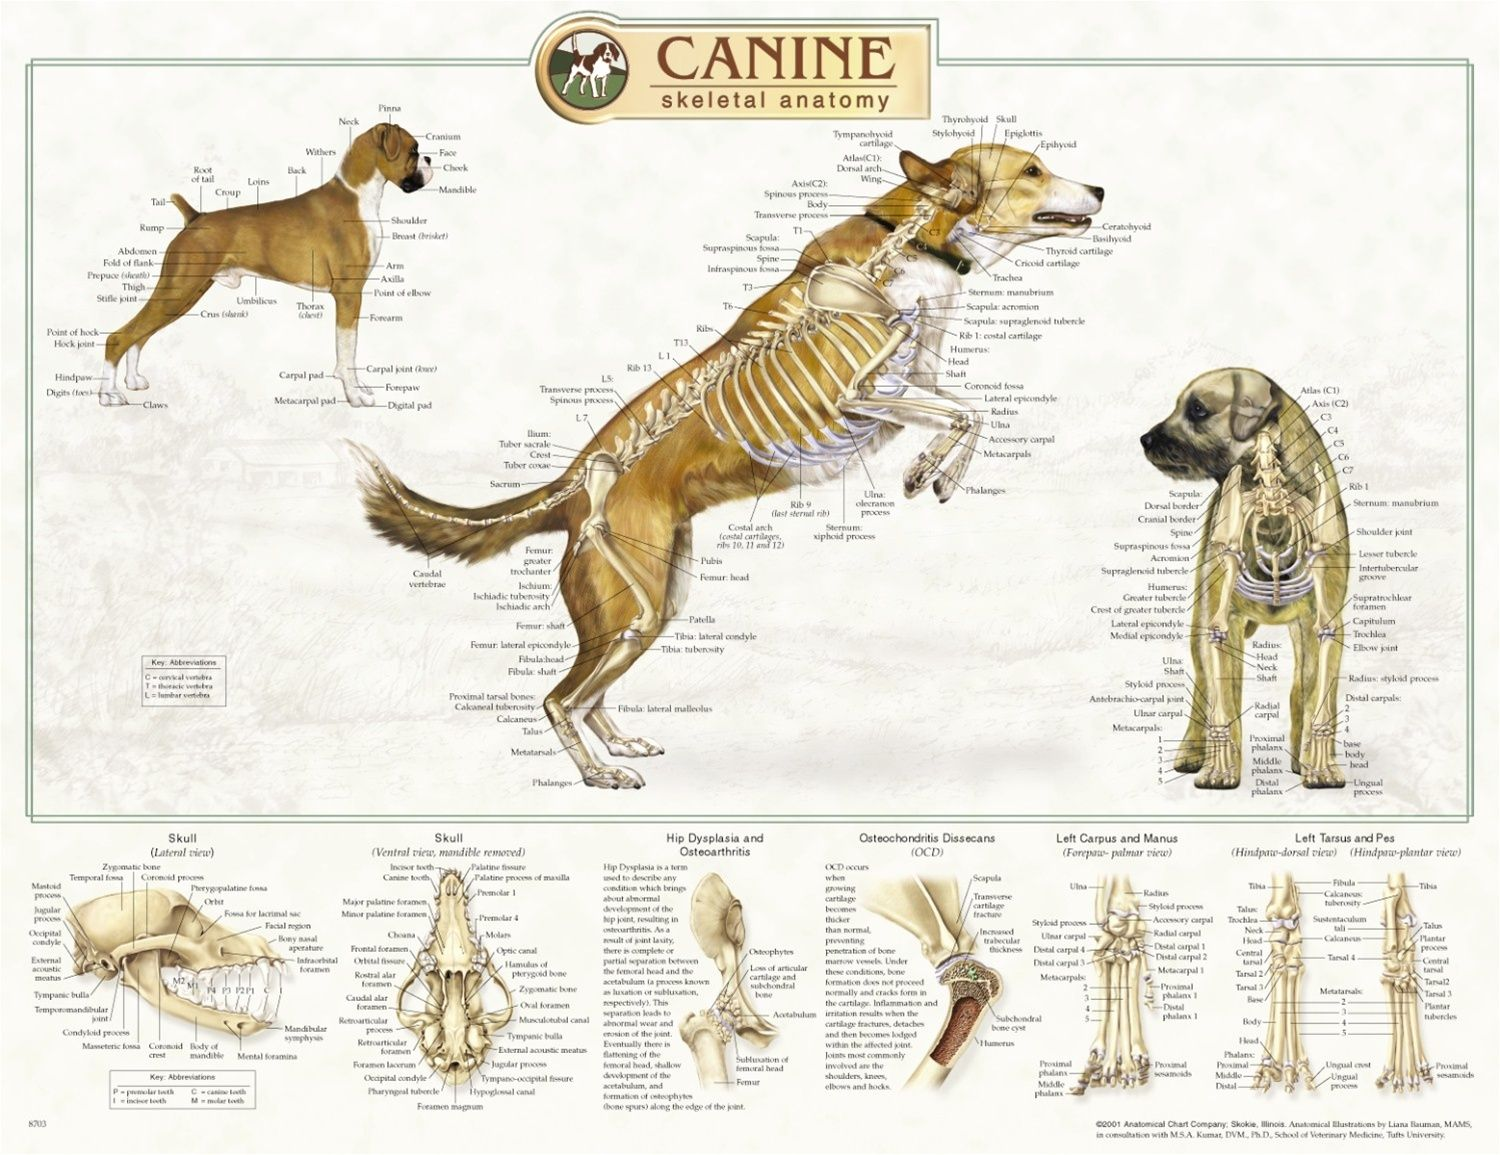 dog internal anatomy diagram parallel wiring for recessed lights canine skeletal system